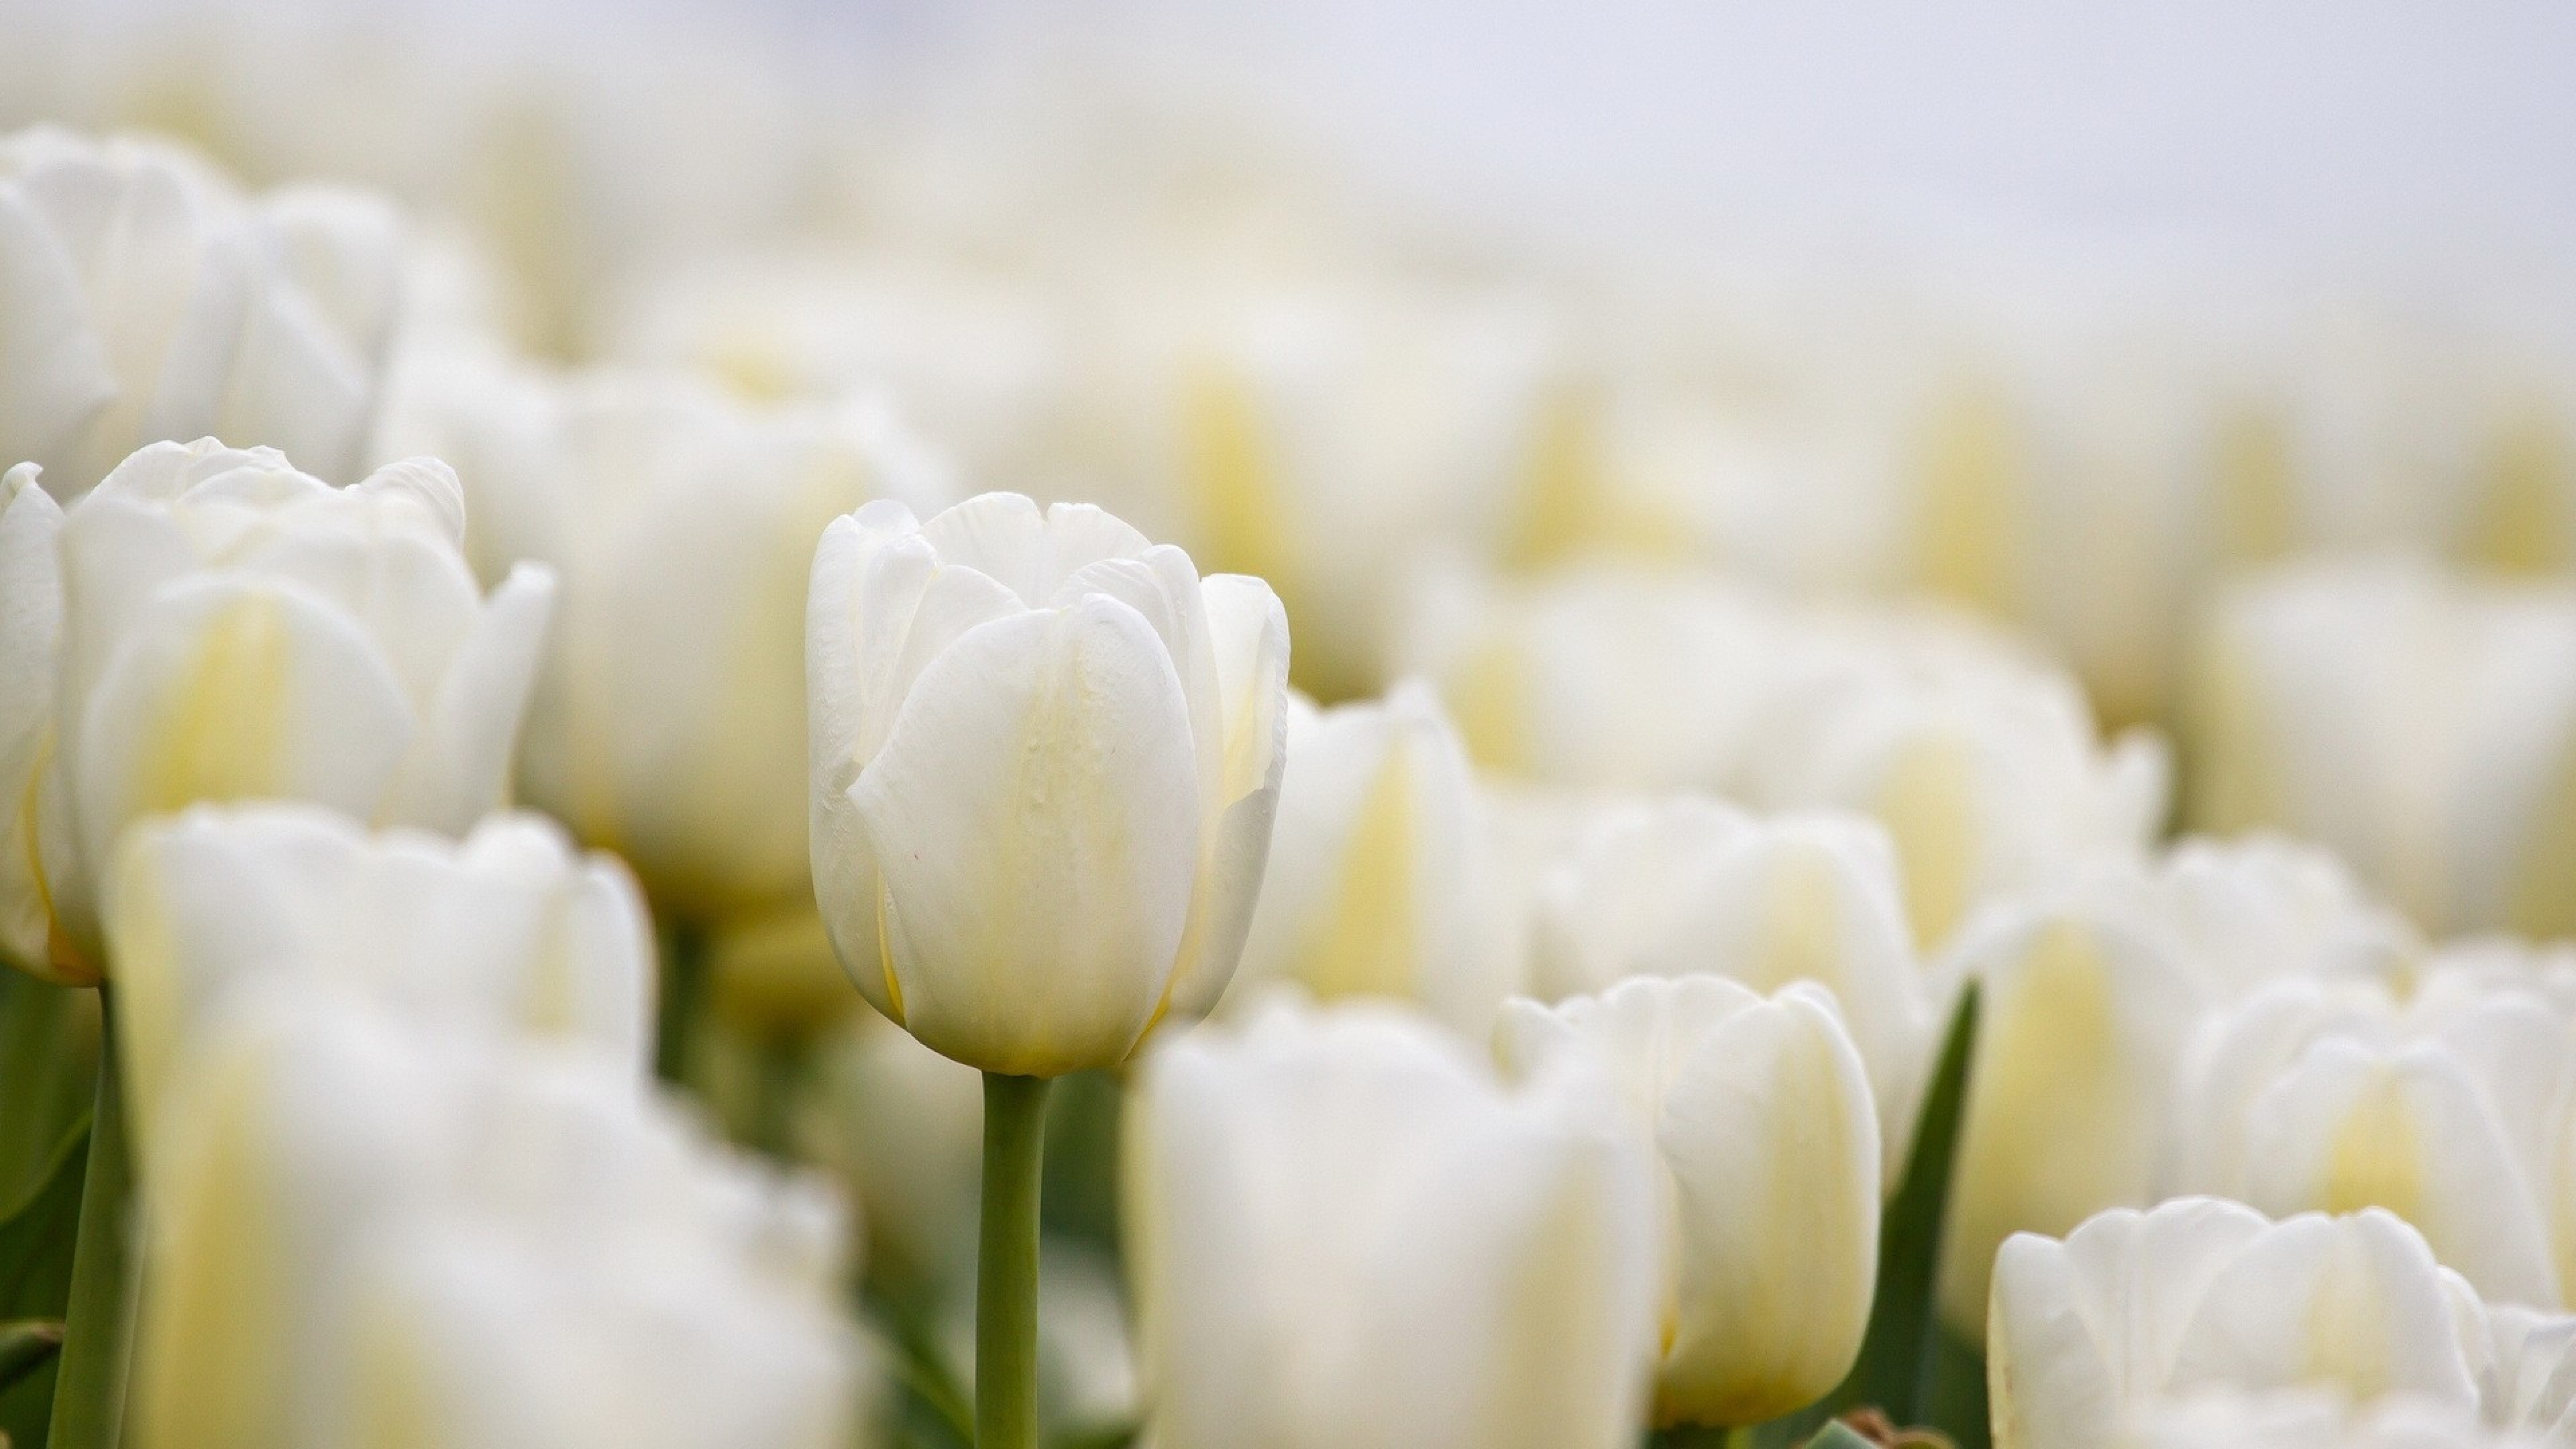 3840x2160 Wallpaper tulips, white, flowers, buds